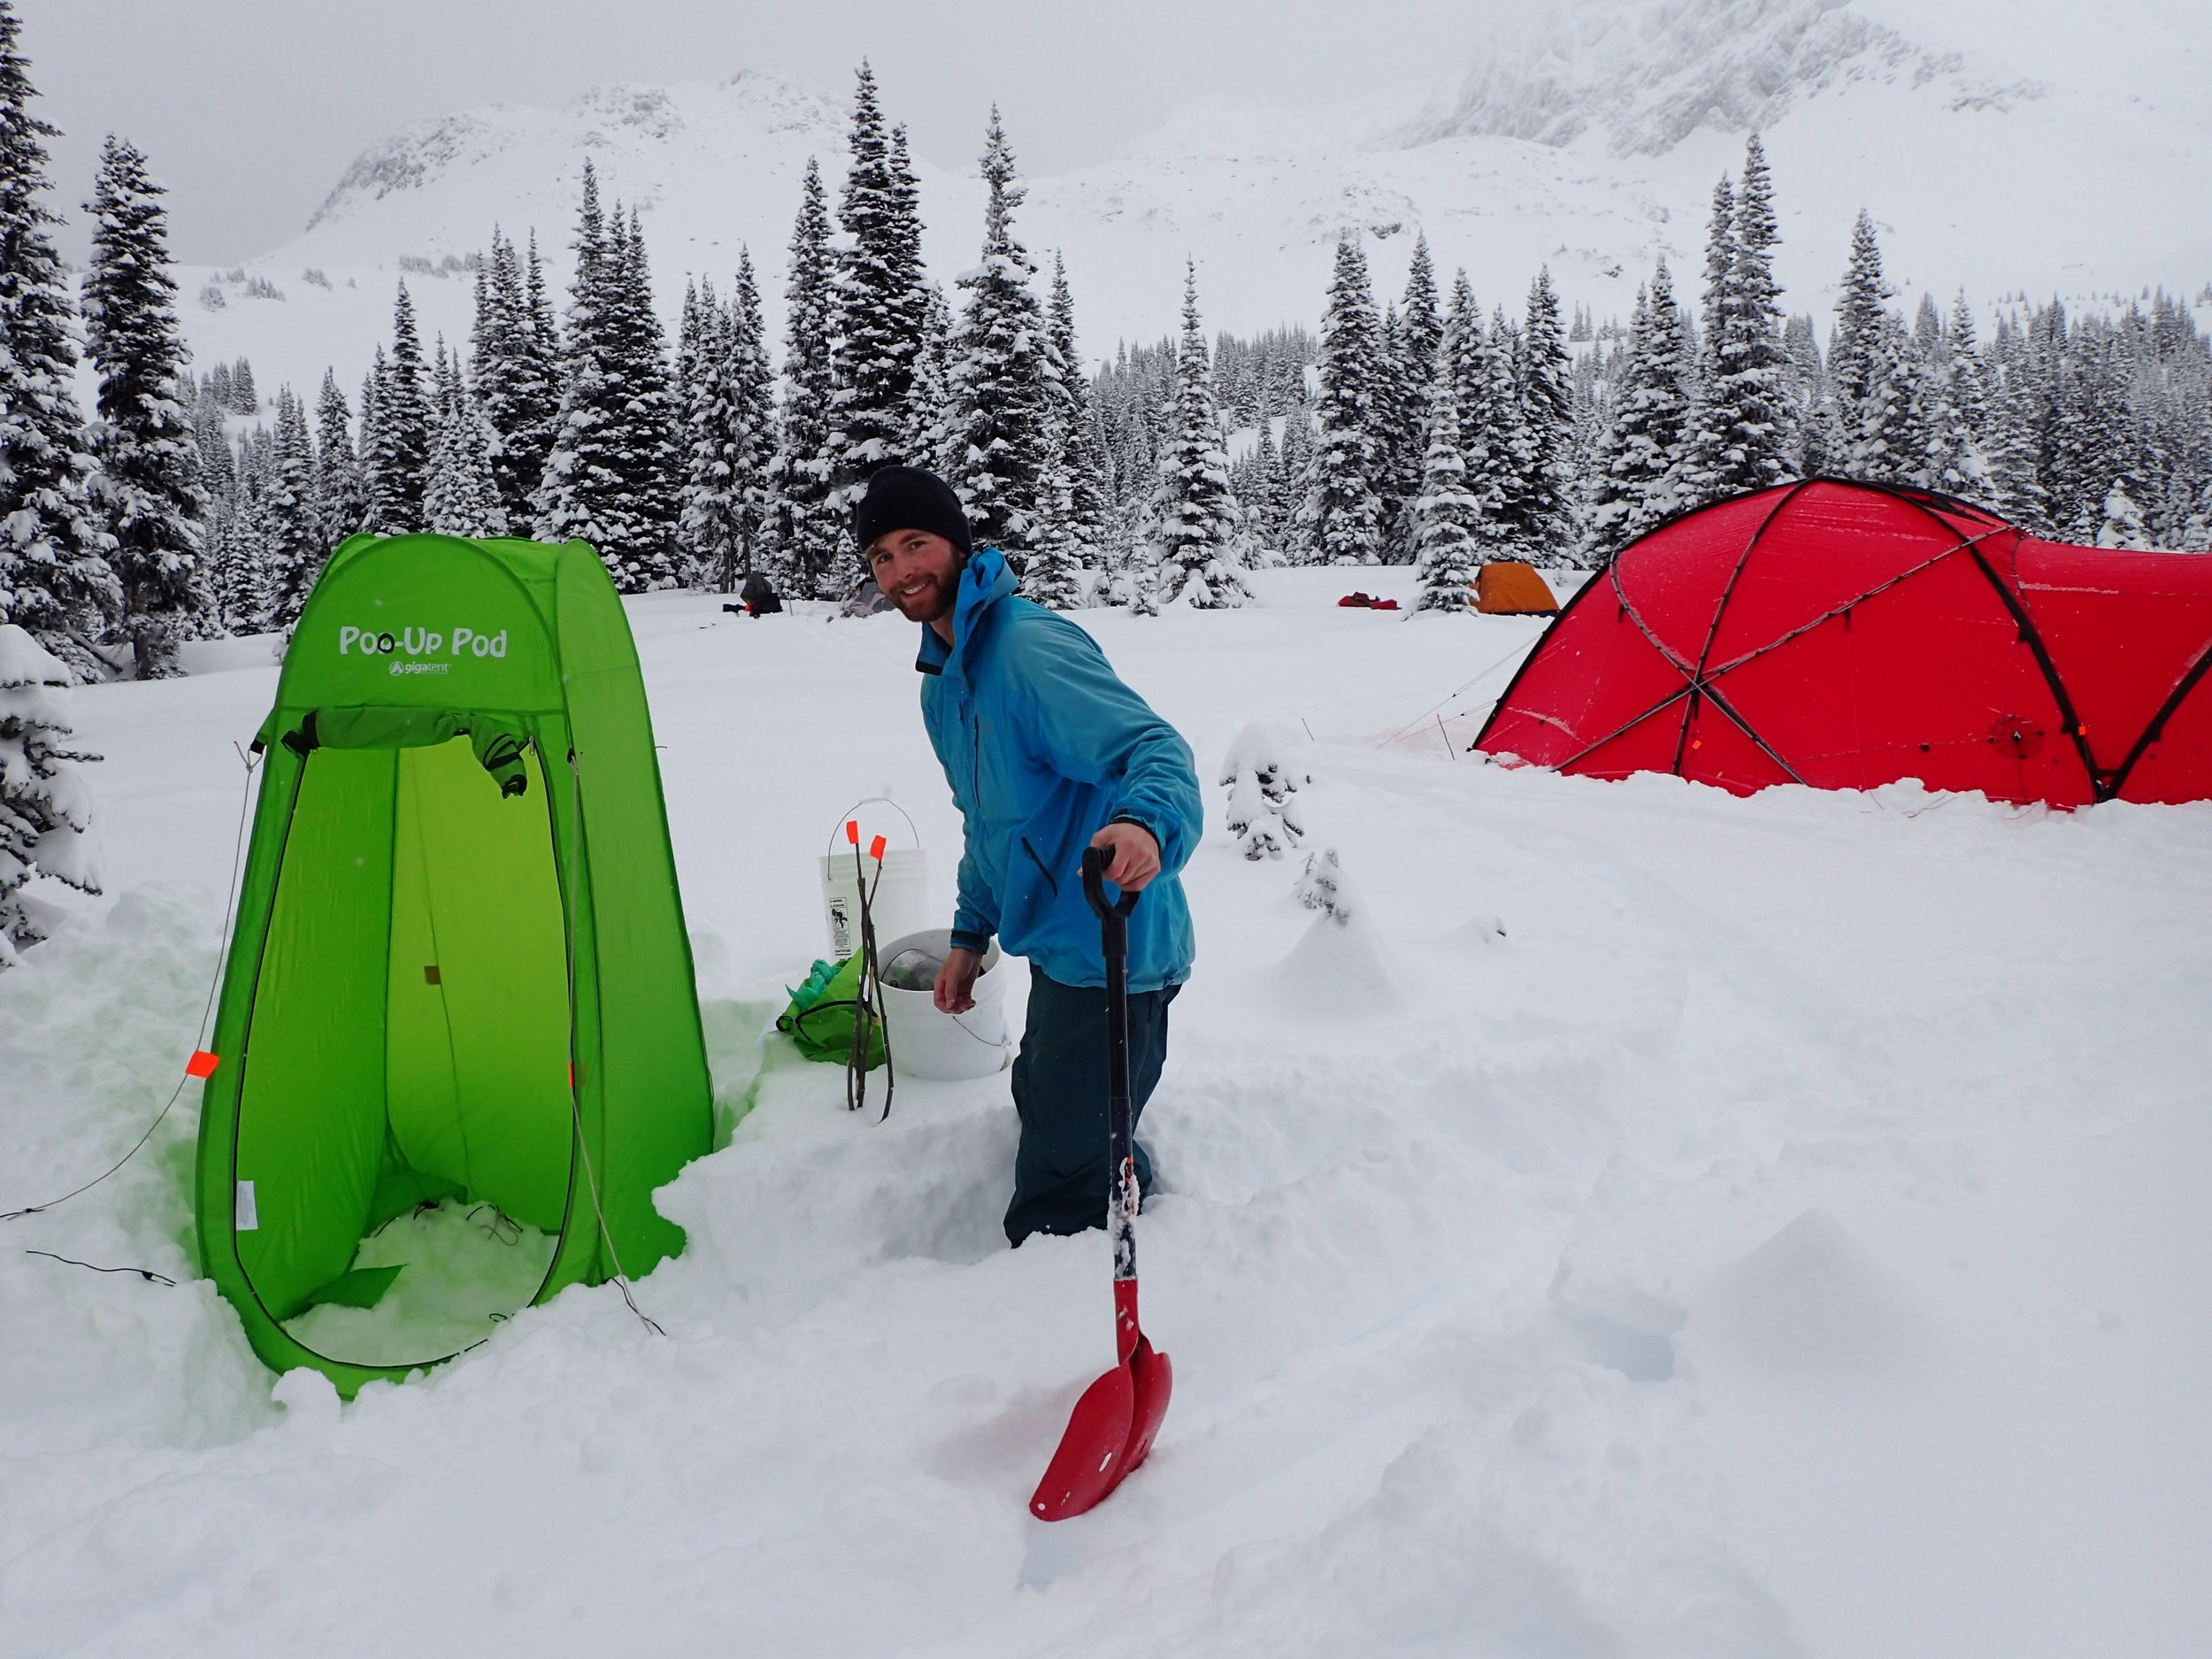 Sam setting up the outhouse for the trip. All poop is flown out. Photo Adriana Muja